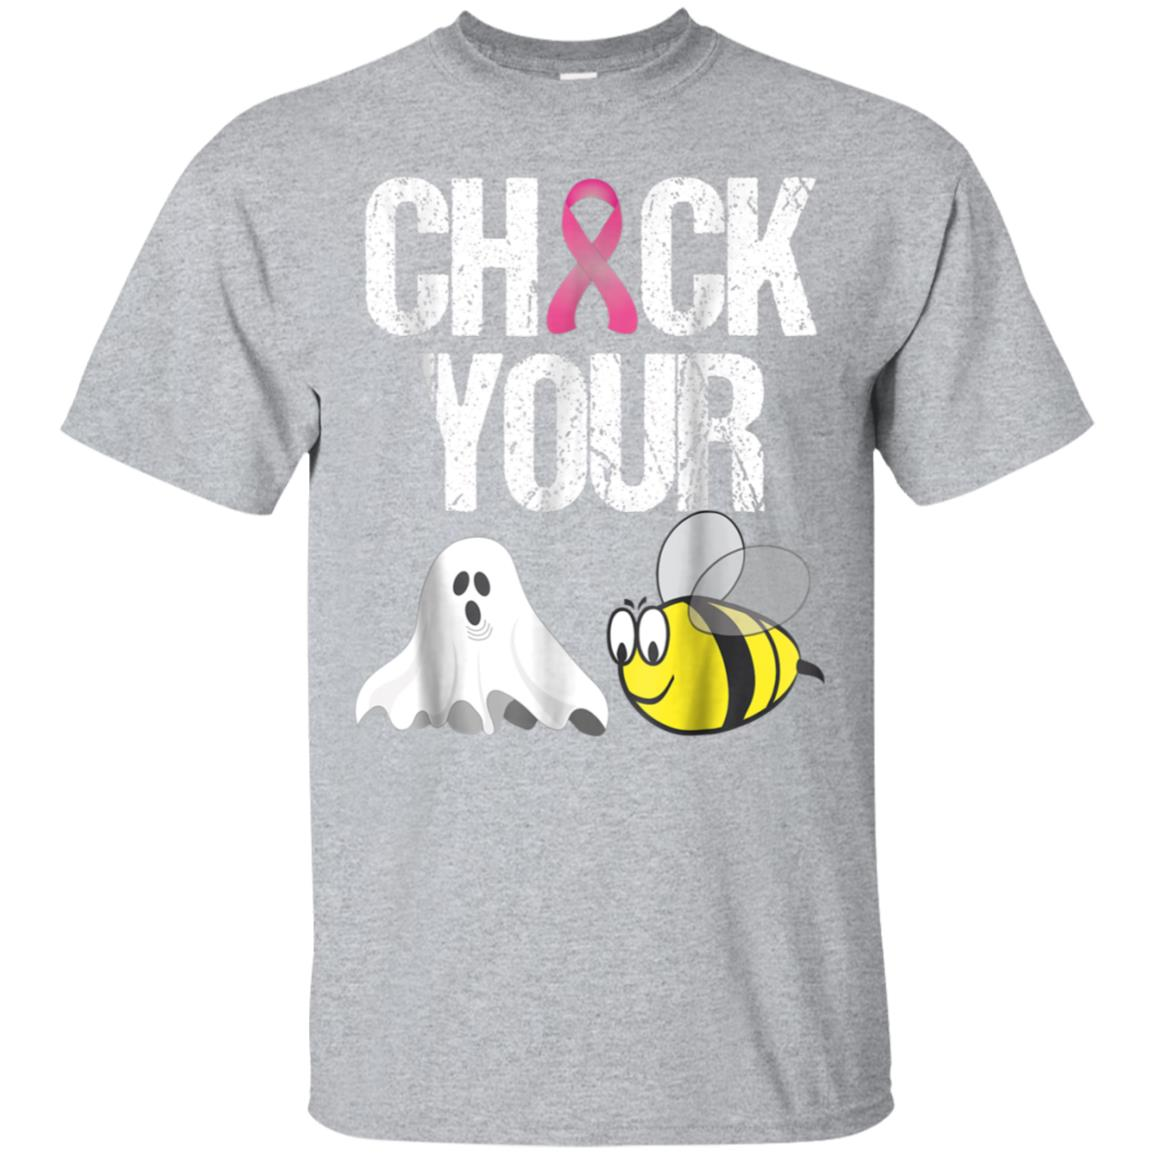 Check Your Boo Bees Shirt Funny Breast Cancer Halloween Gift 99promocode